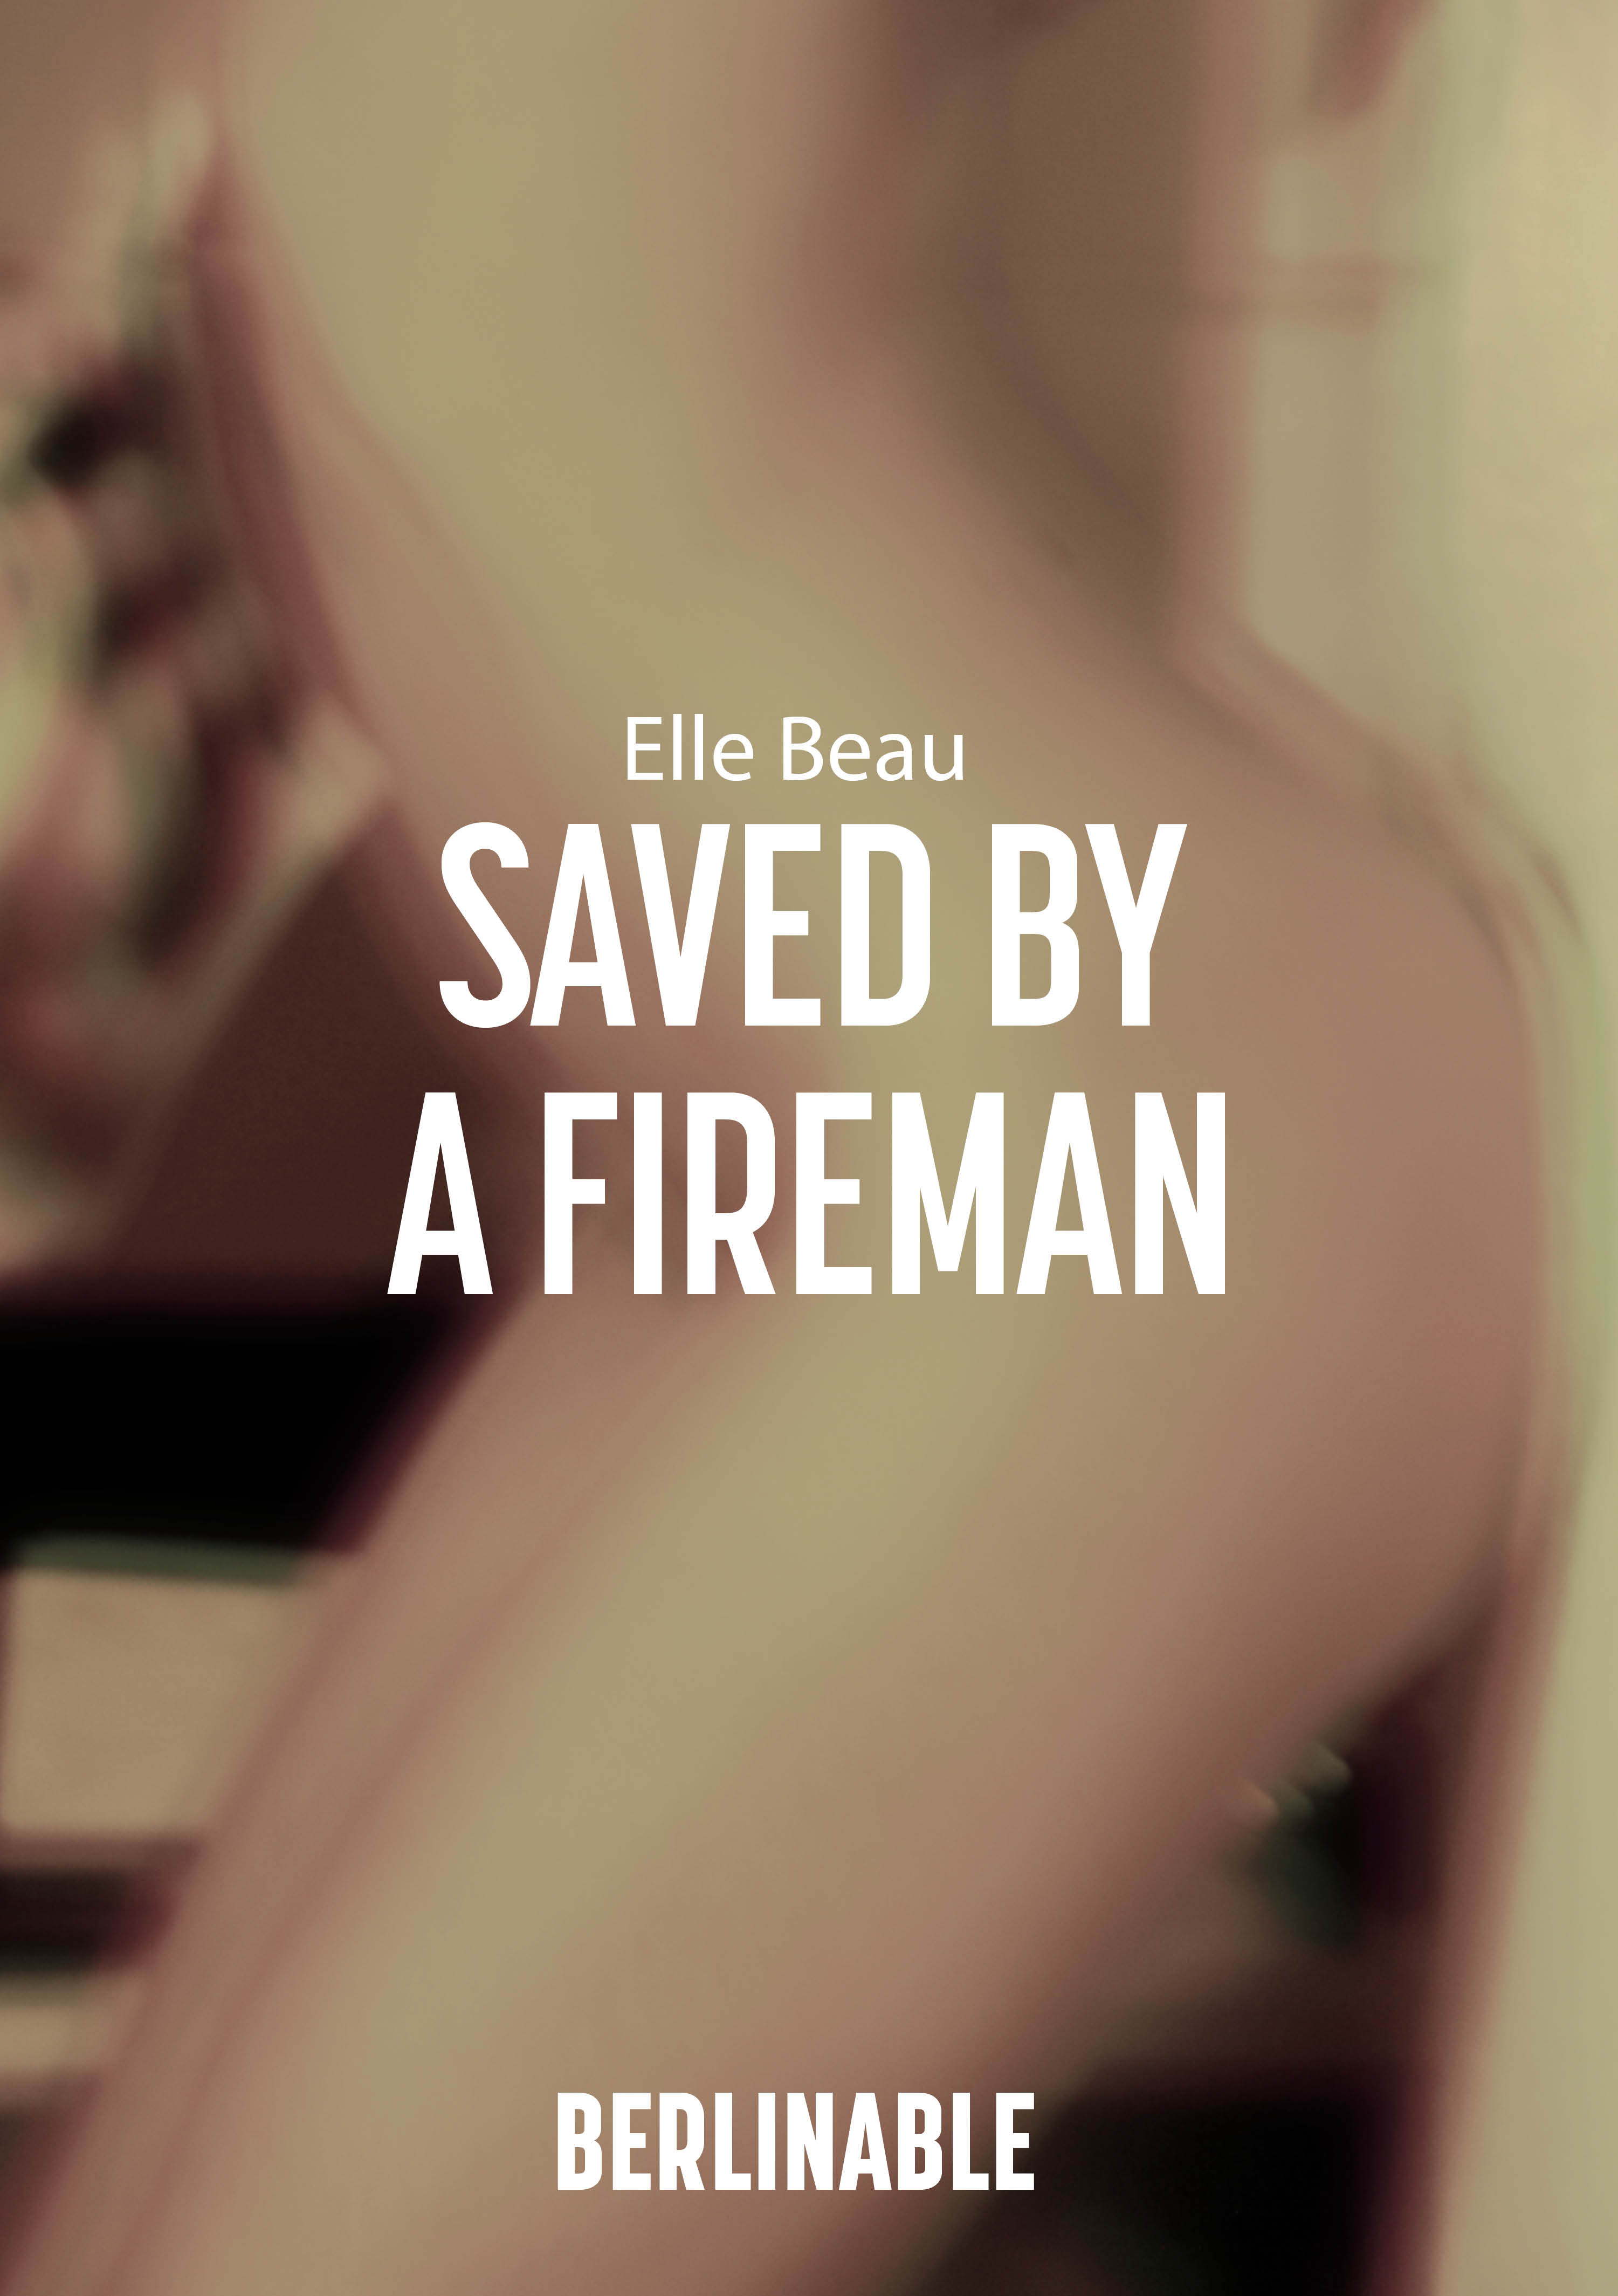 Elle Beau Saved by a Fireman the playdate